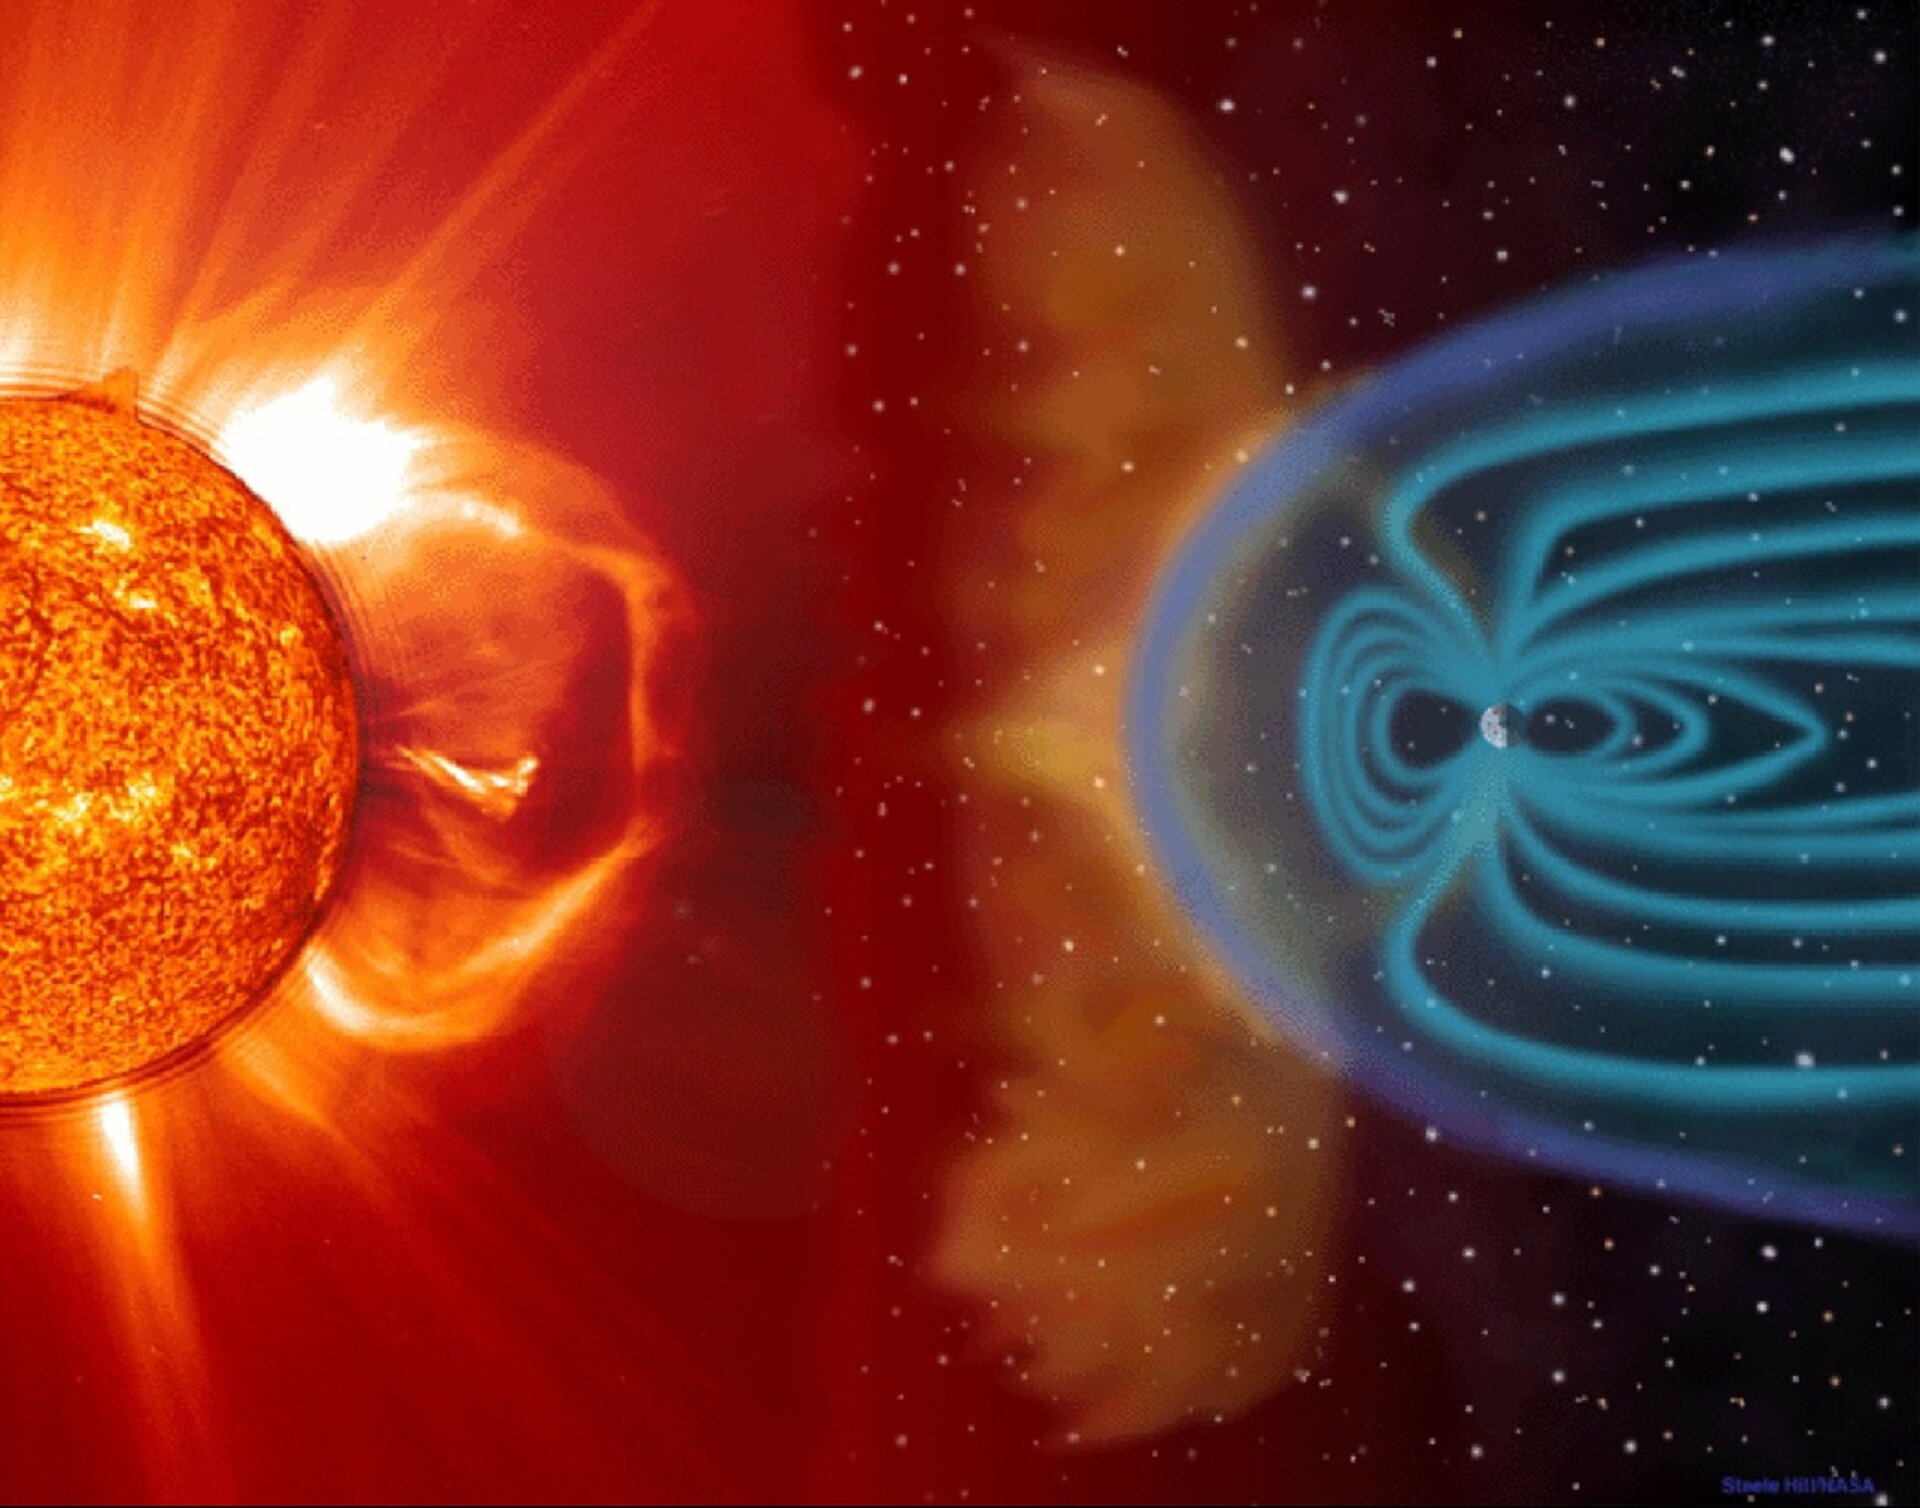 Earth's magnetic field protects us from the Sun's radiation, but astronauts travelling in space are more exposed.